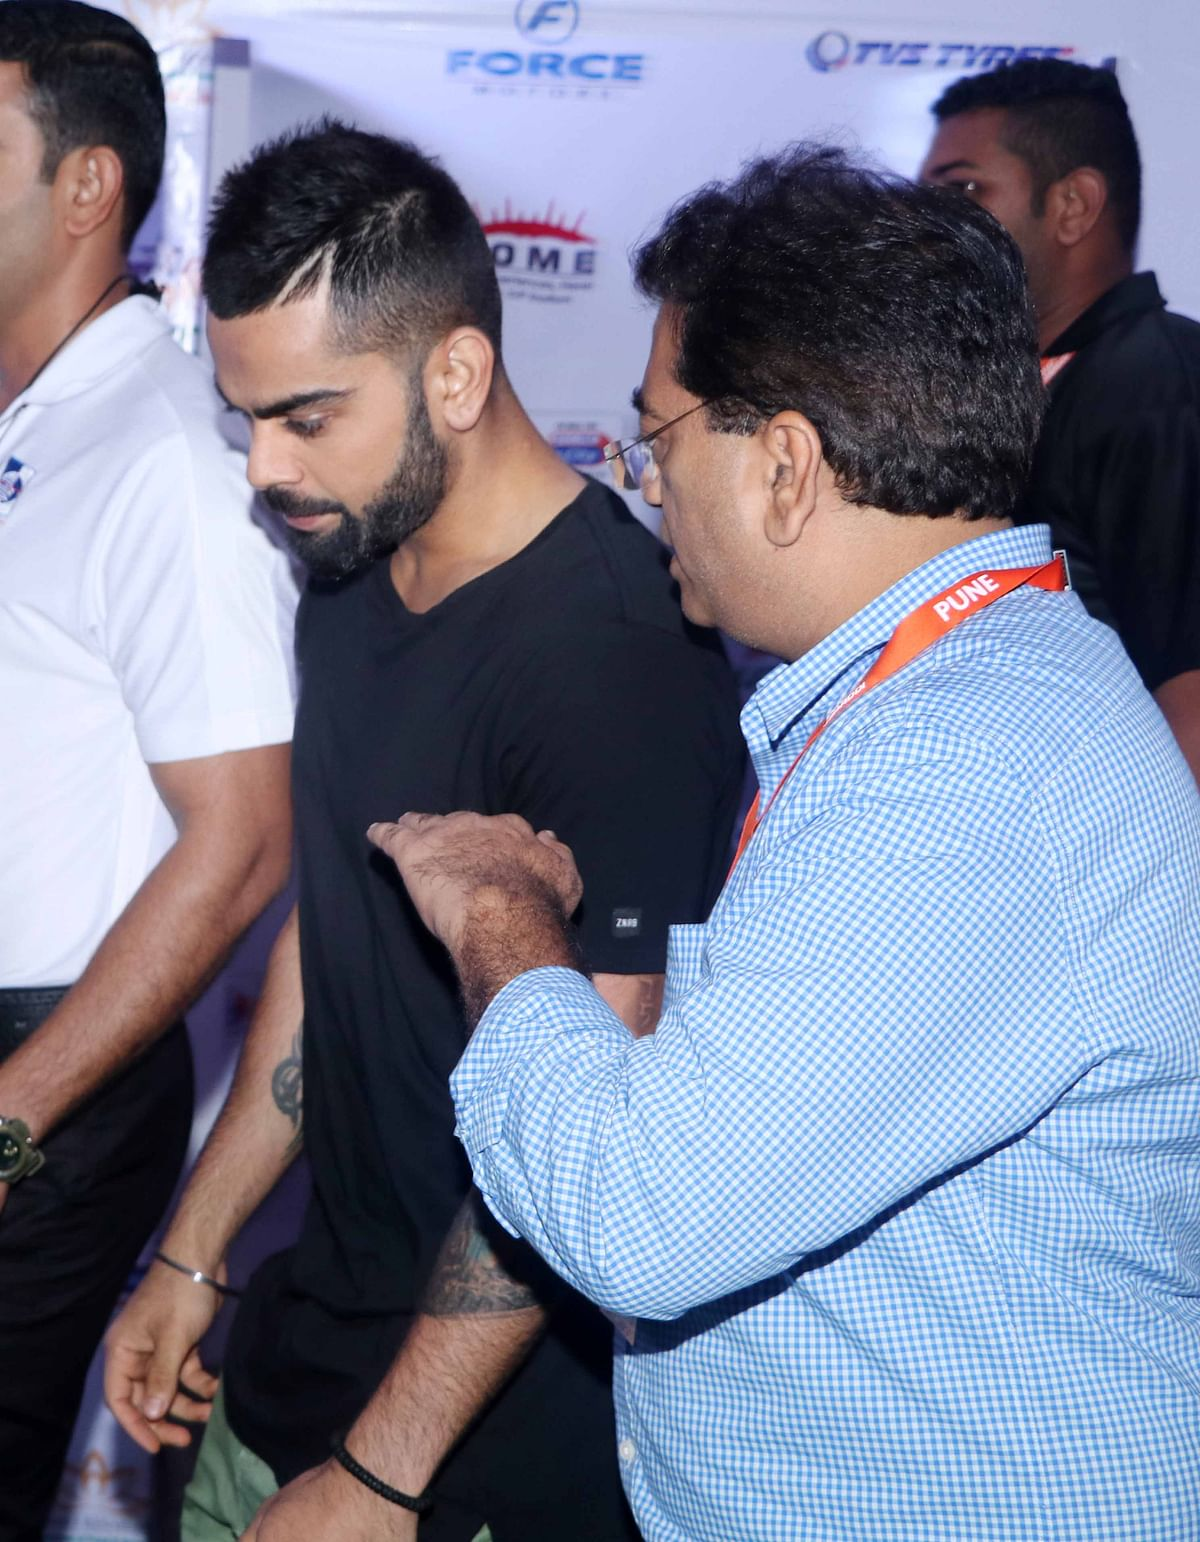 Virat Kohli attends the Pro Kabaddi League. (Photo: Yogen Shah)